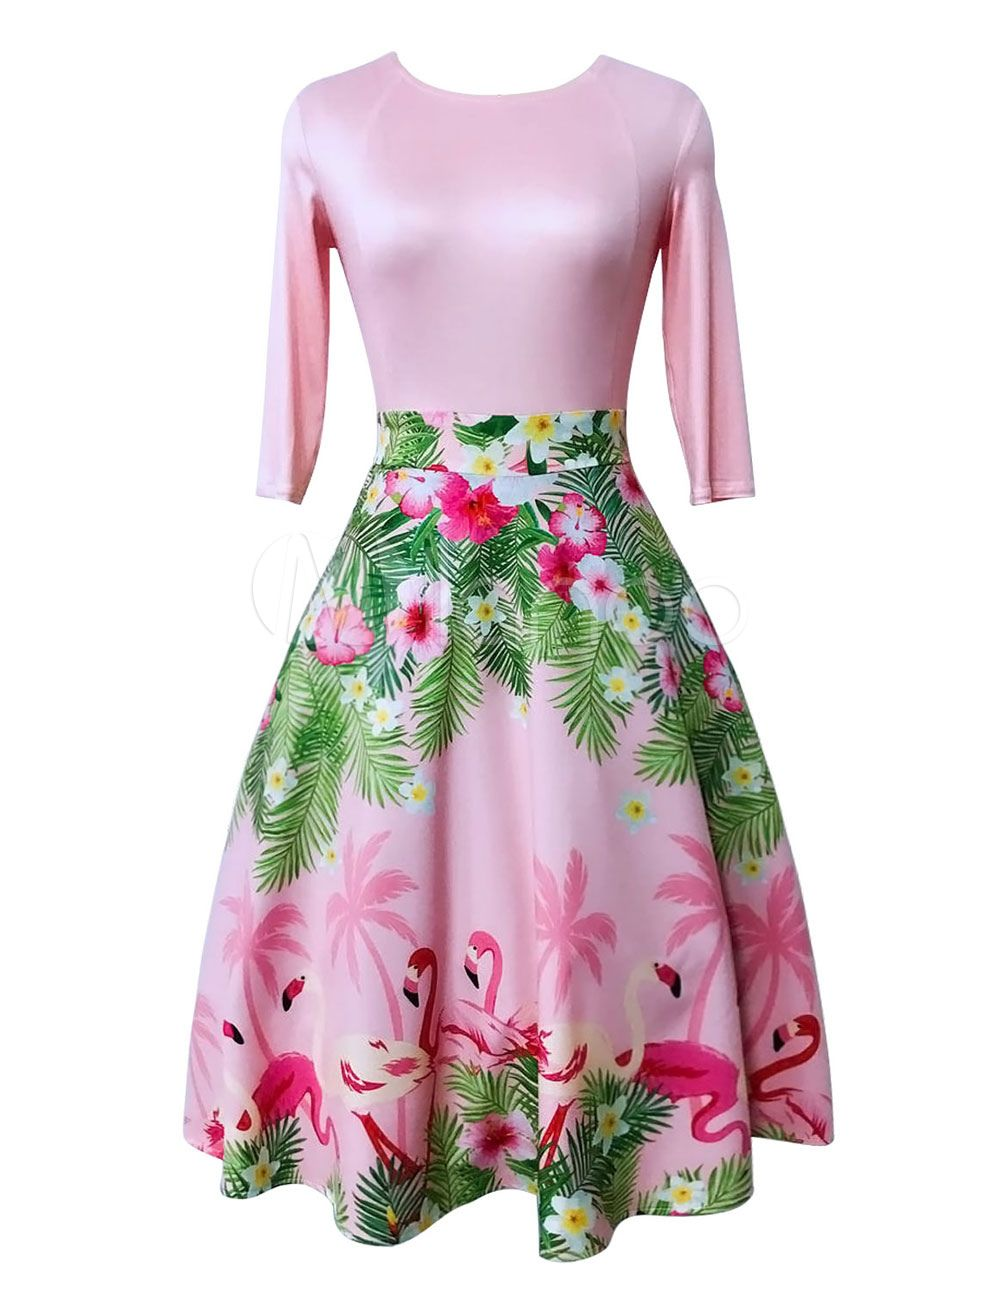 5d01c2de350ed Pink Vintage Dress Round Neck Half Sleeve Flamingo Floral Print A Line  Dresses For Women